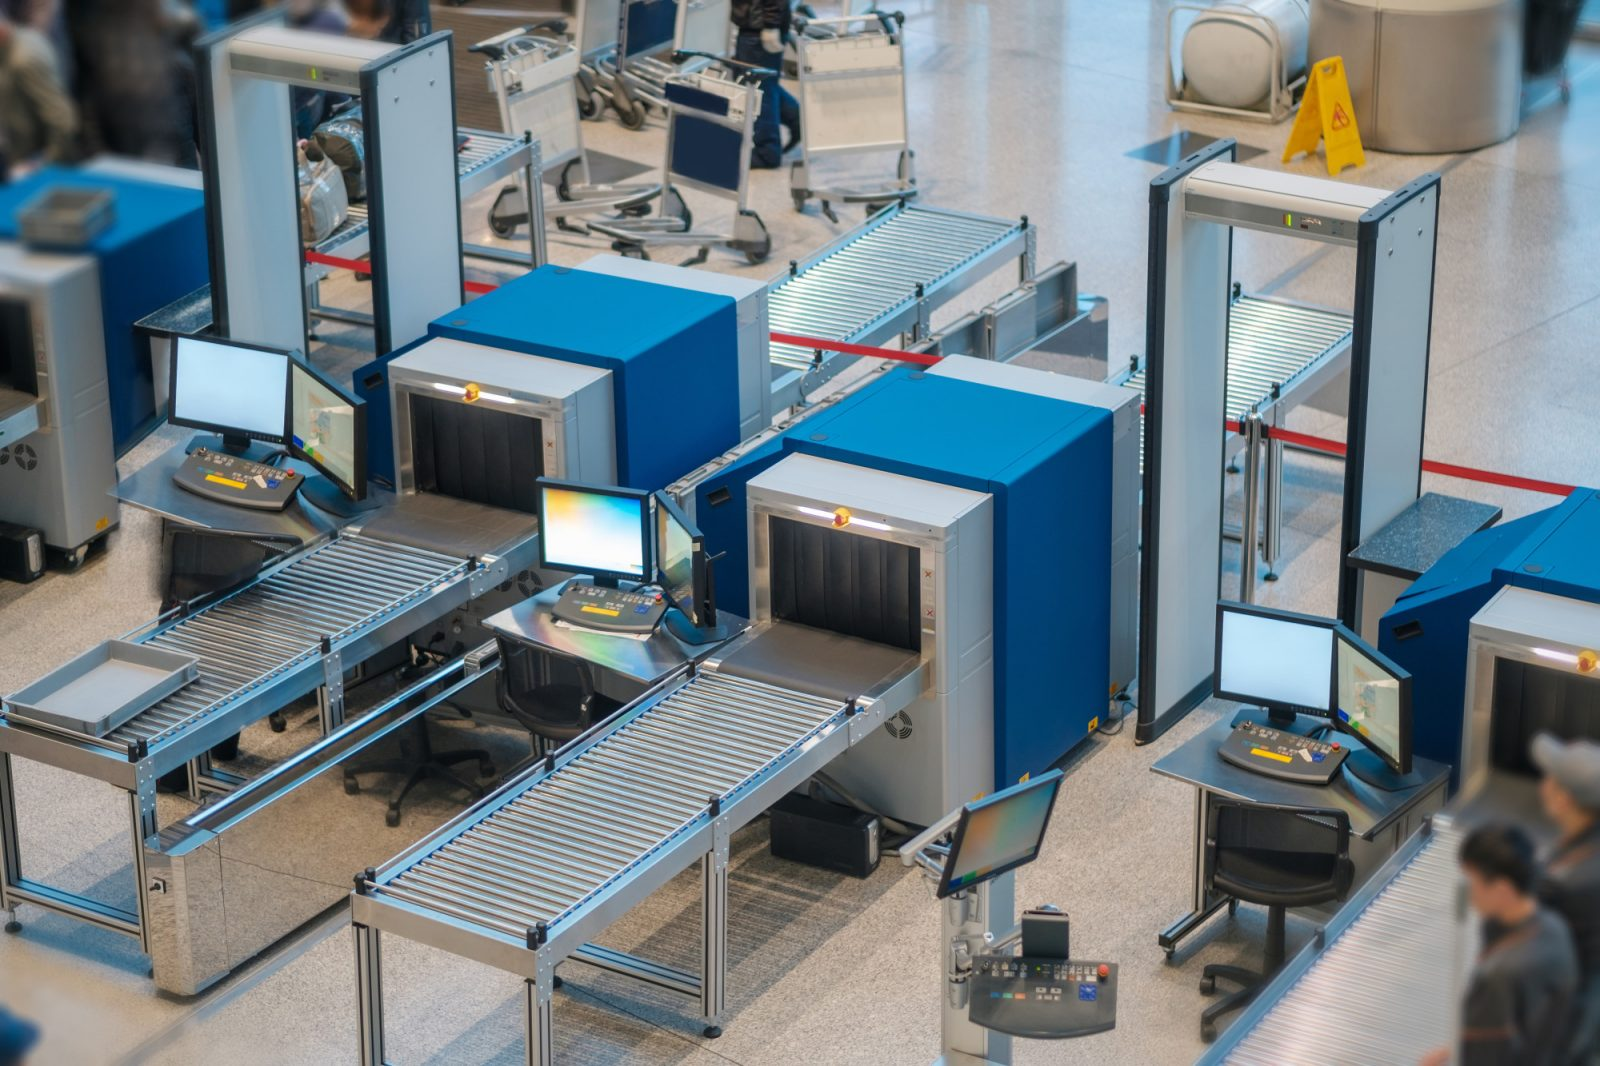 7 Tips for Improving Airport Security